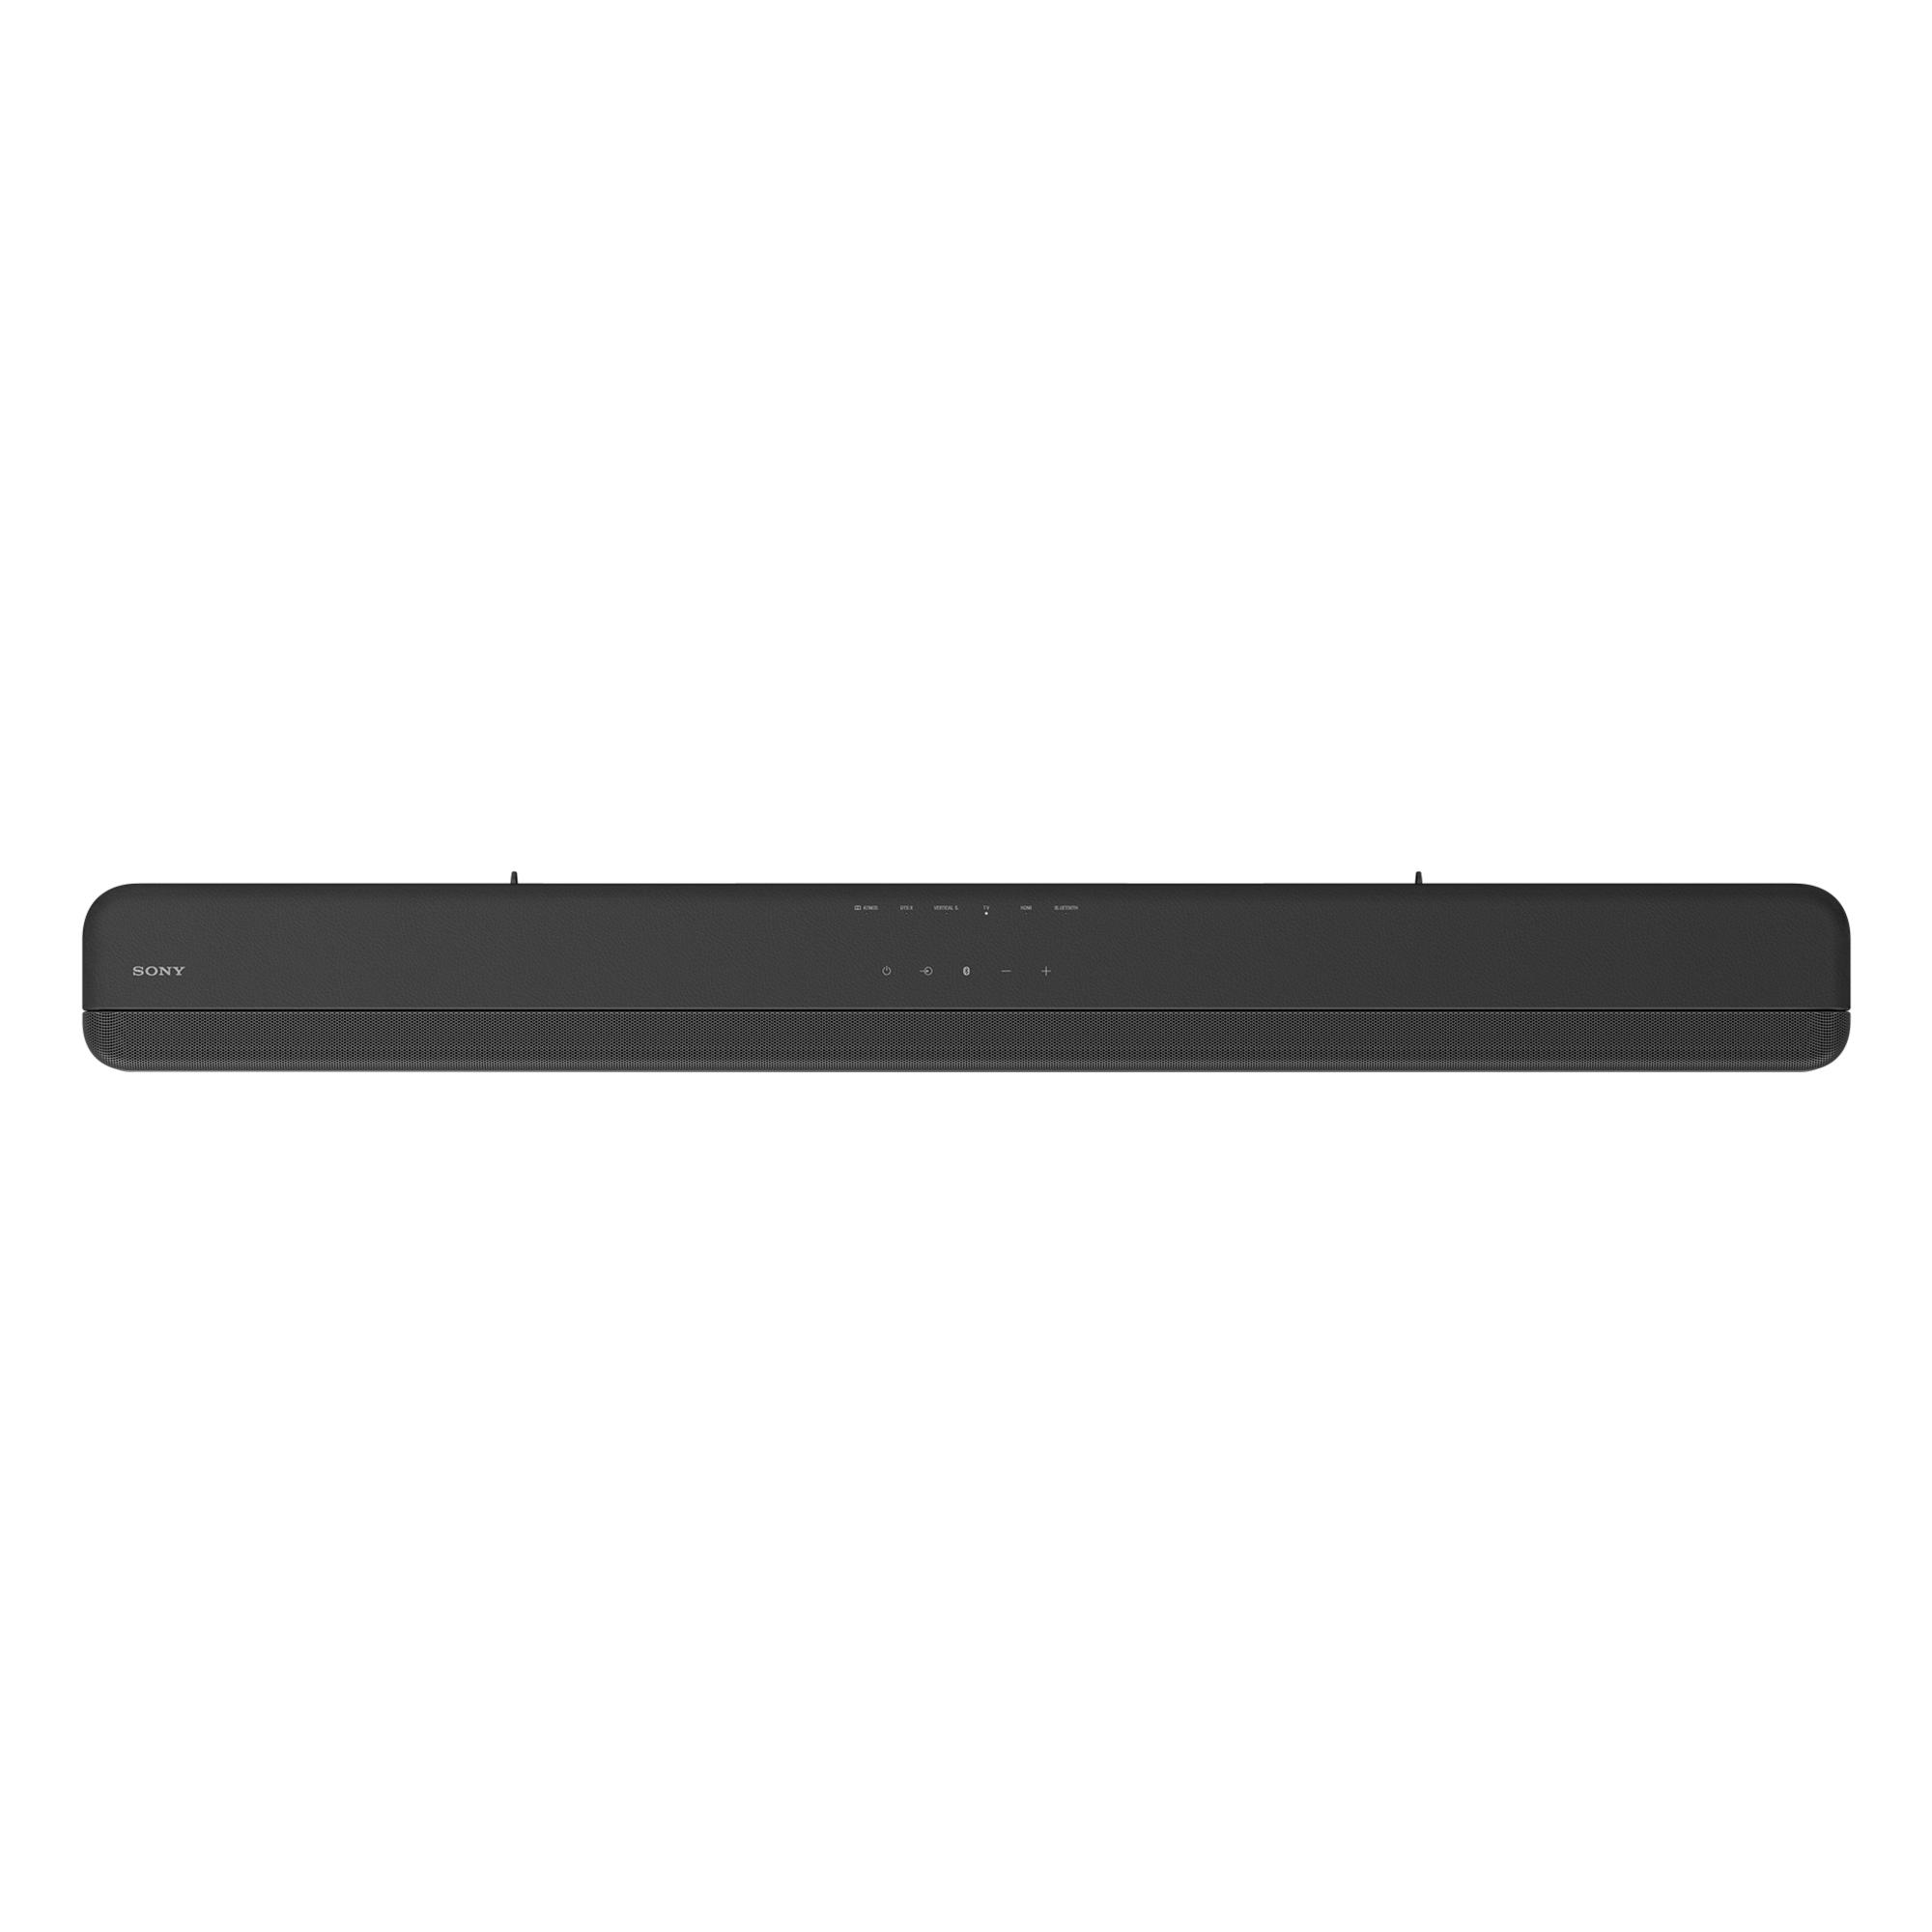 HT-X8500 2.1ch Dolby Atmos / DTS:X Single Sound Bar with built-in subwoofer, , product-image